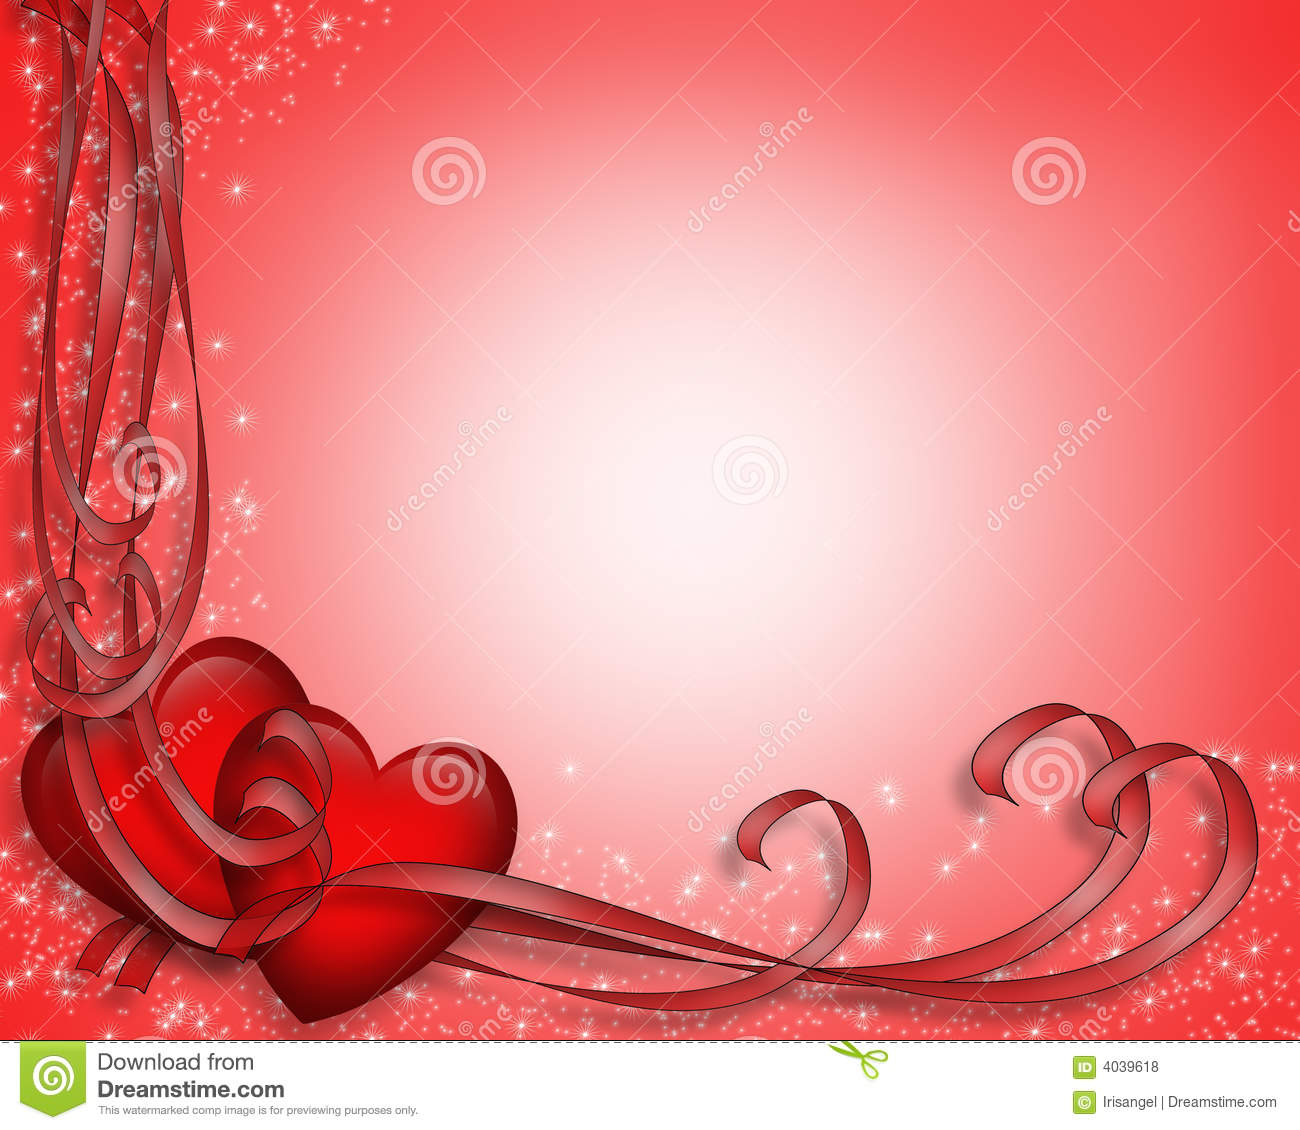 Valentine Hearts Border Ribbons Royalty Free Stock Photos - Image ...